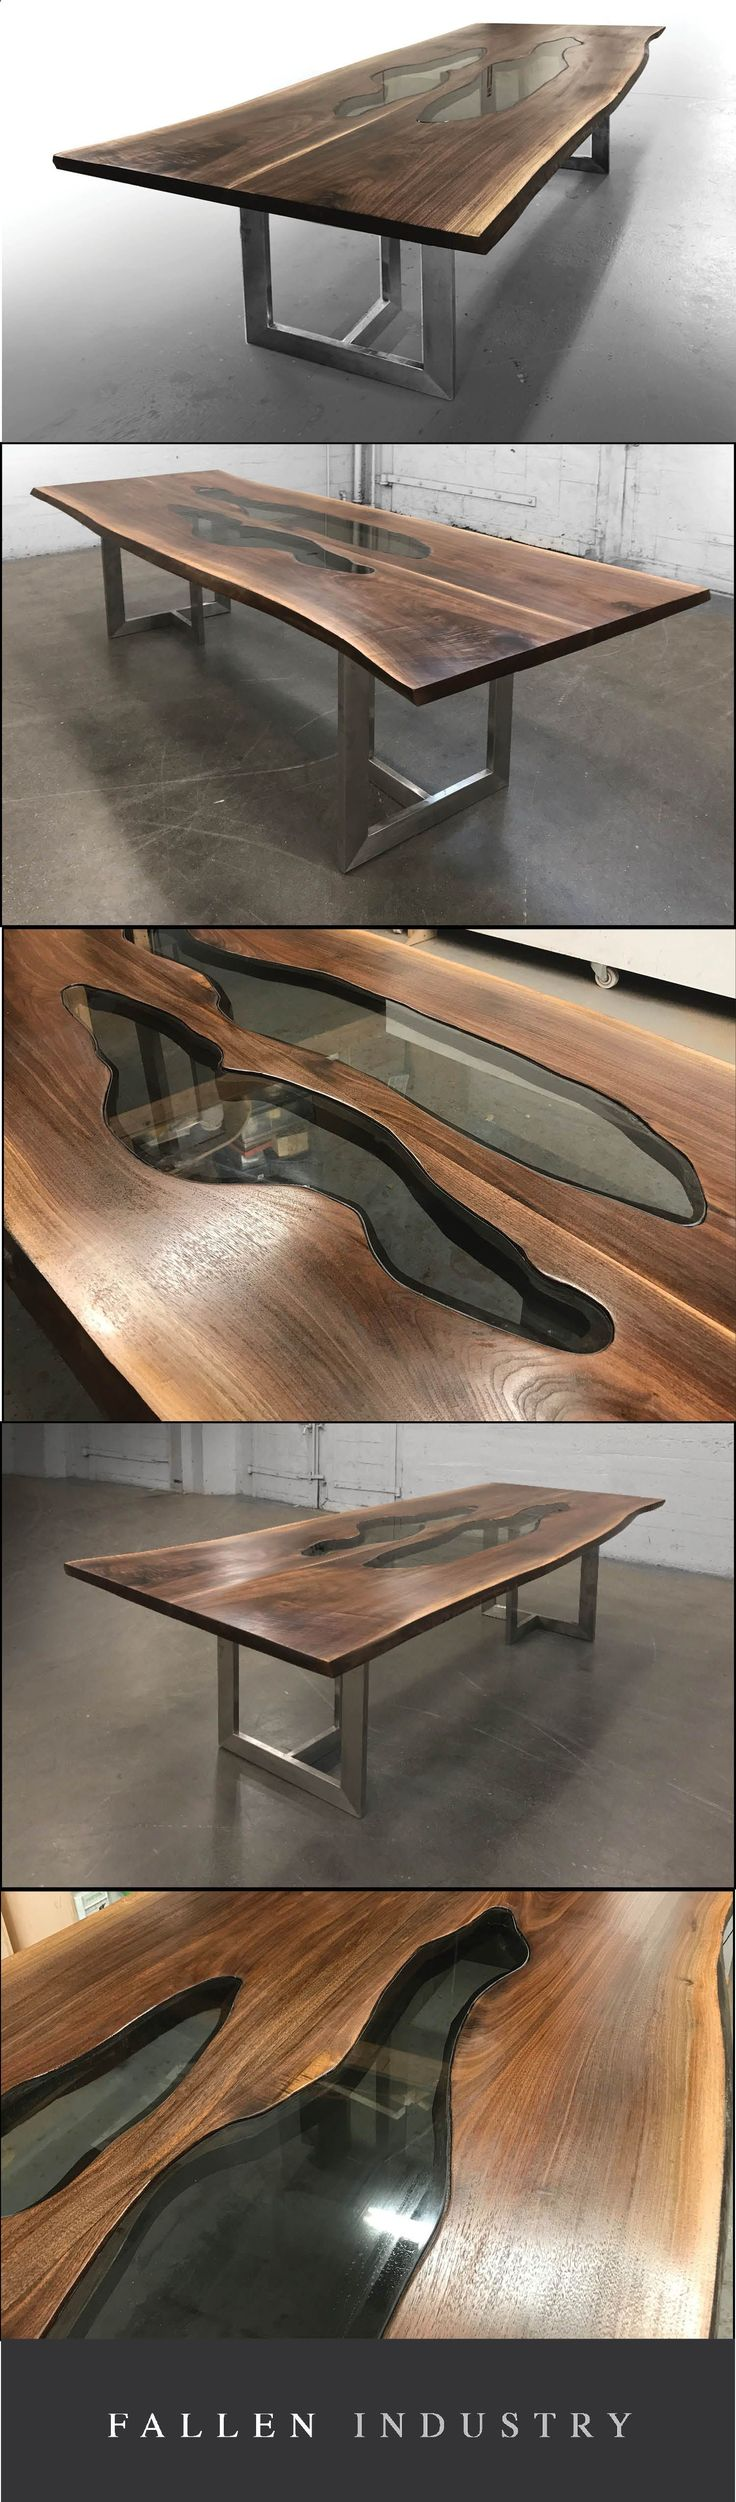 Teds Wood Working - Live edge walnut slab table with glass inlays shown on a stainless steel Tribeca base. Love the artistry of this office table. Imagine some Herman Miller Eames or Emeco office chairs around it. - Get A Lifetime Of Project Ideas & Inspiration!